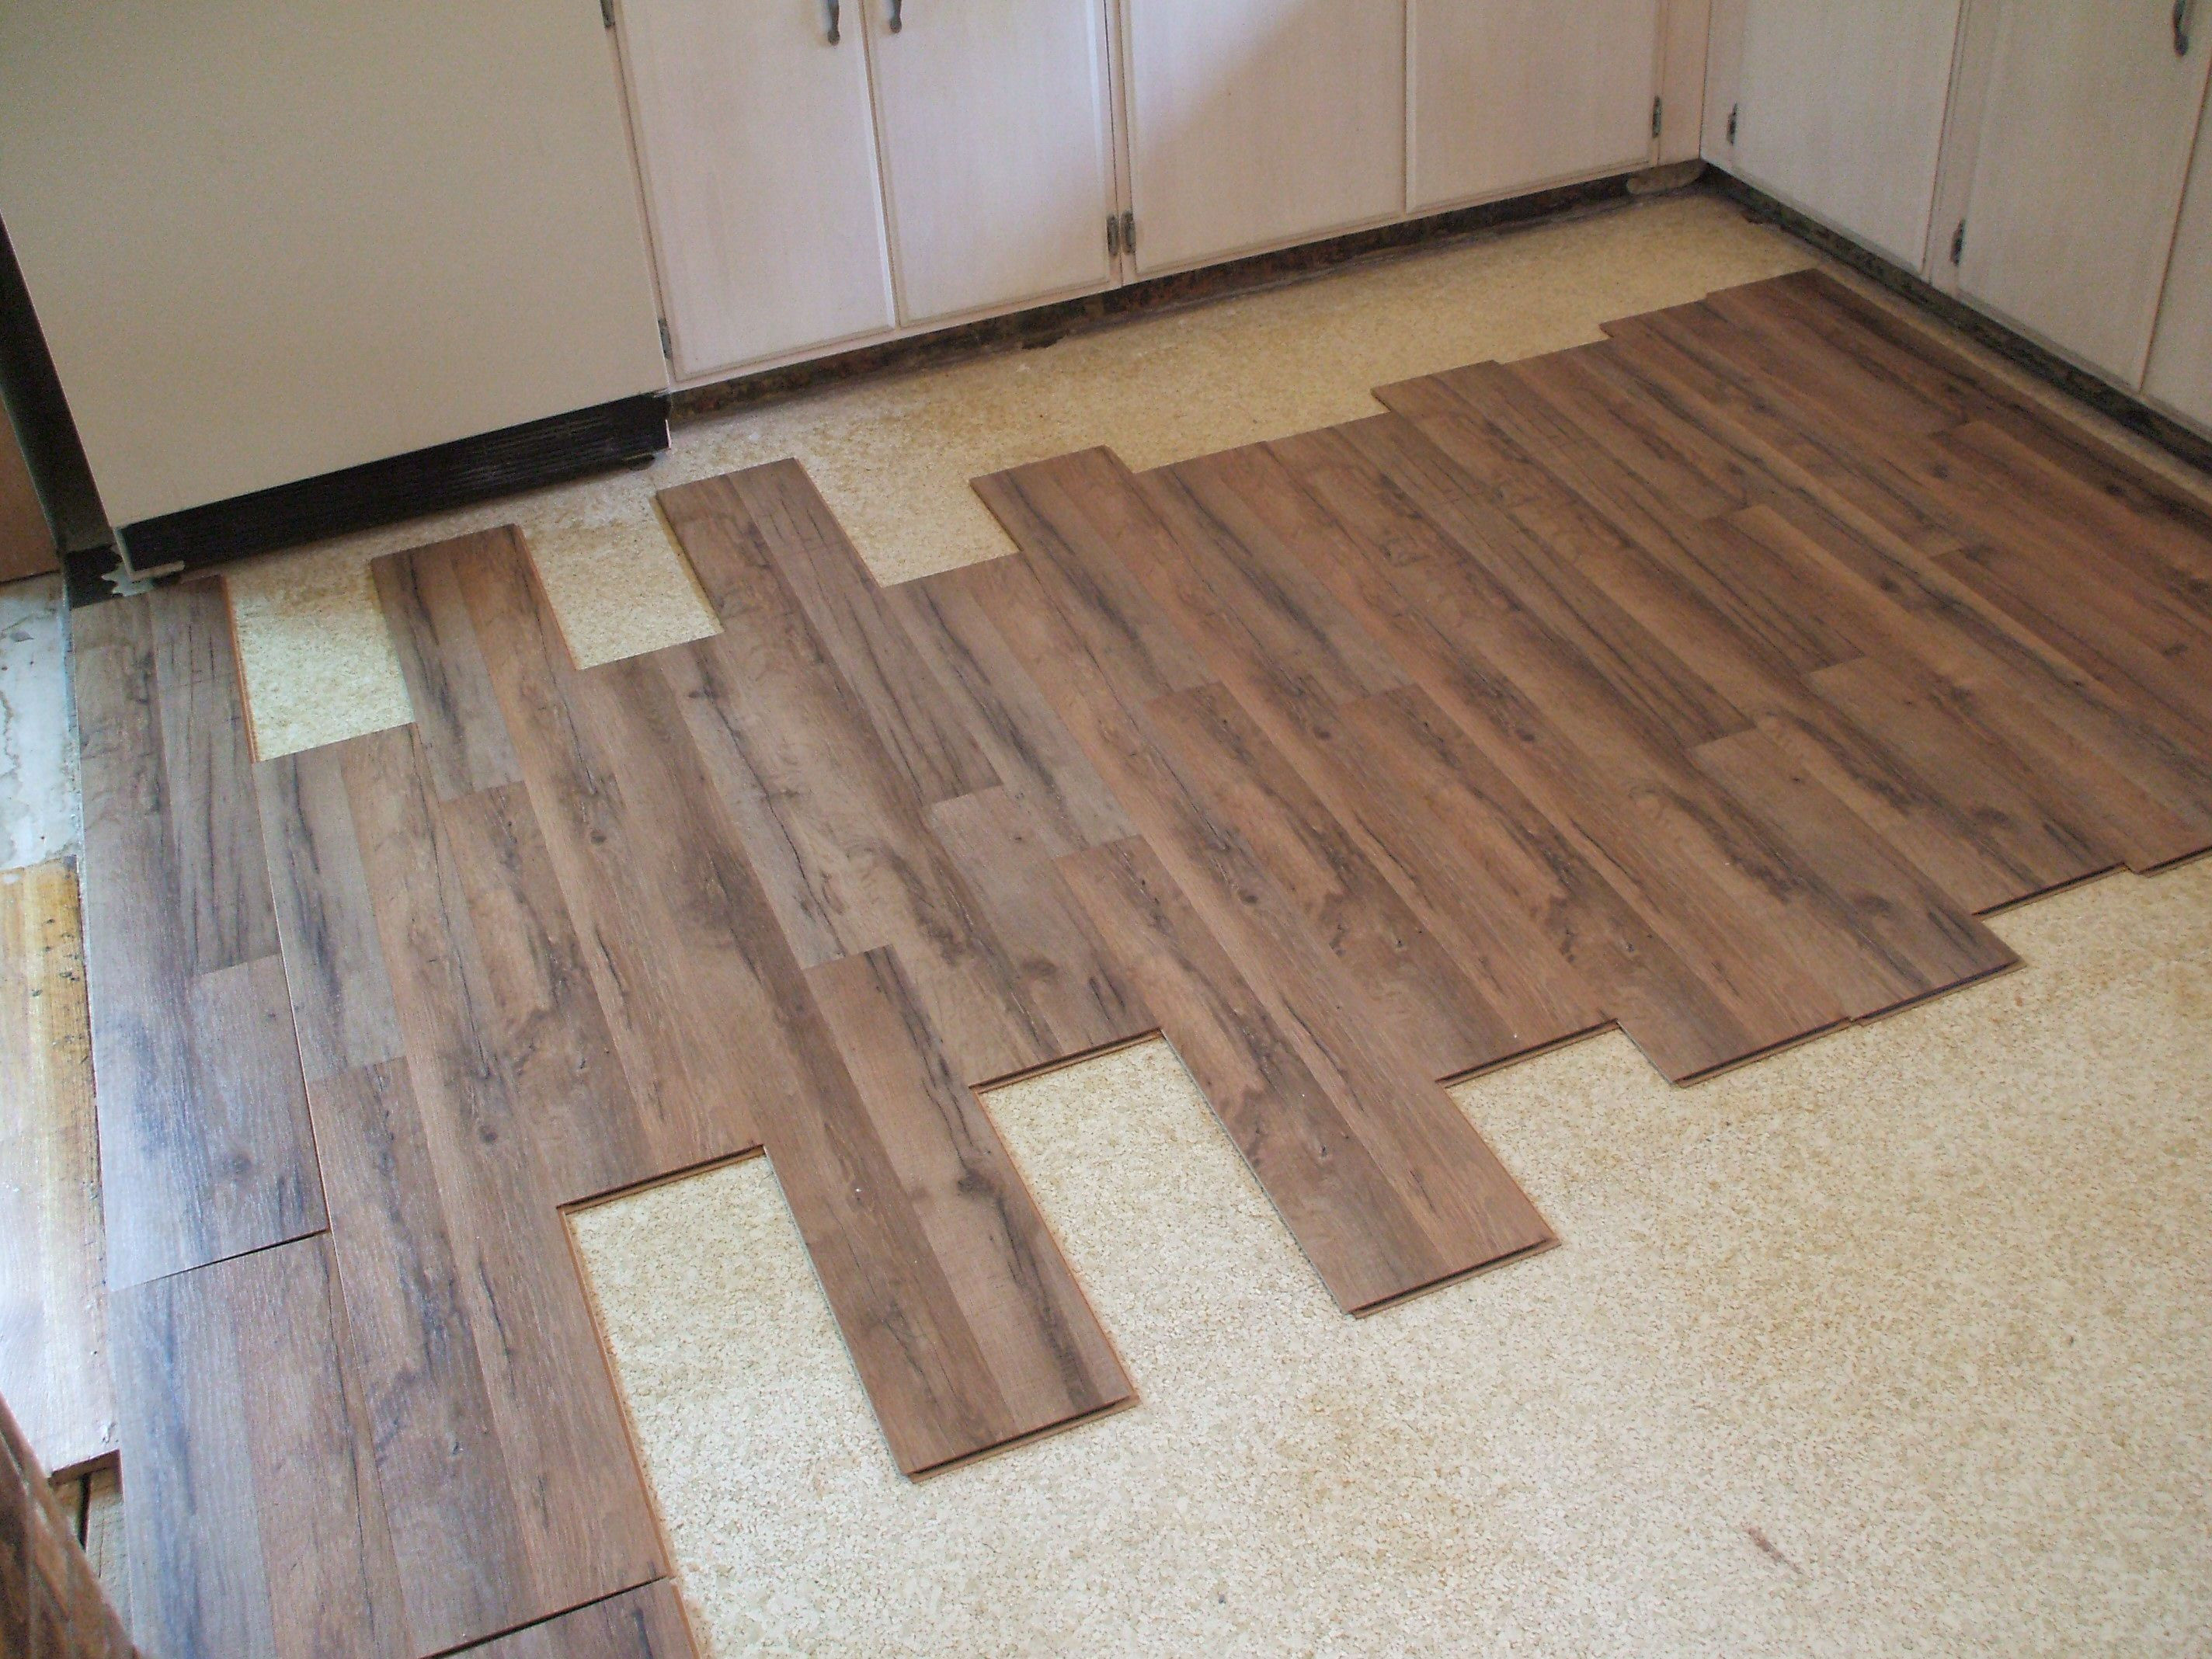 can you glue down hardwood flooring to concrete of laminate flooring installation made easy with installing laminate eyeballing layout 56a49d075f9b58b7d0d7d693 jpg